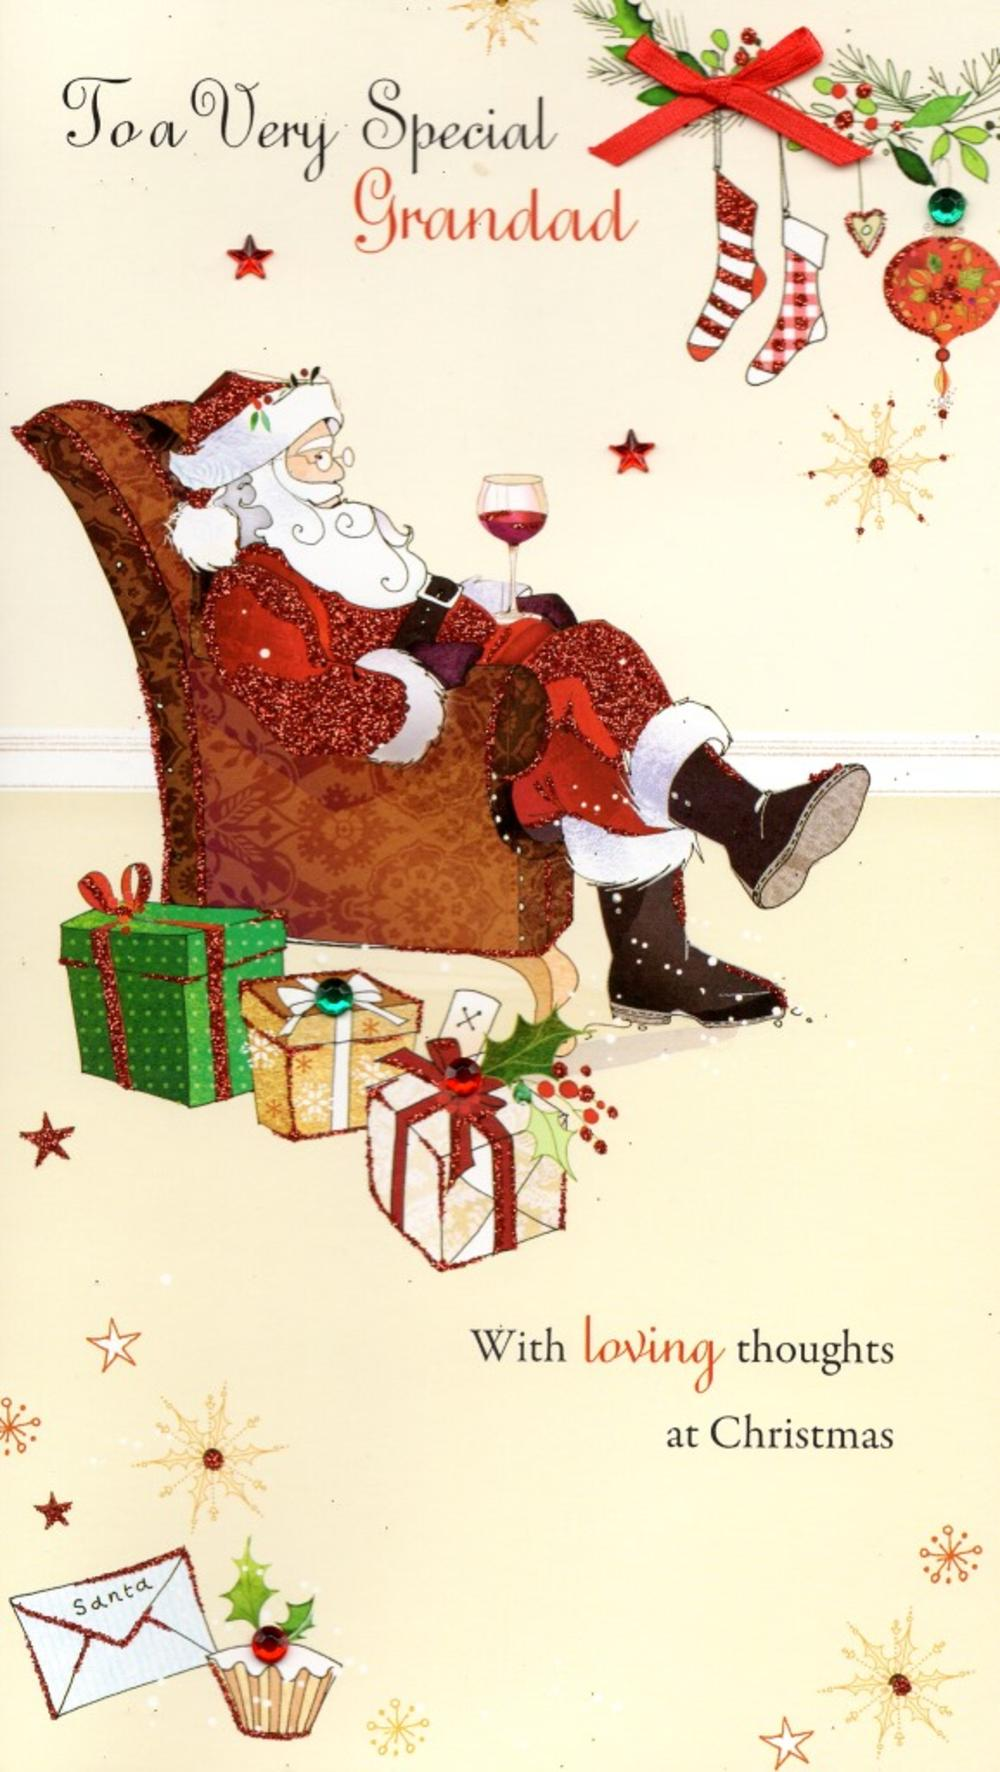 Very Special Grandad Christmas Greeting Card